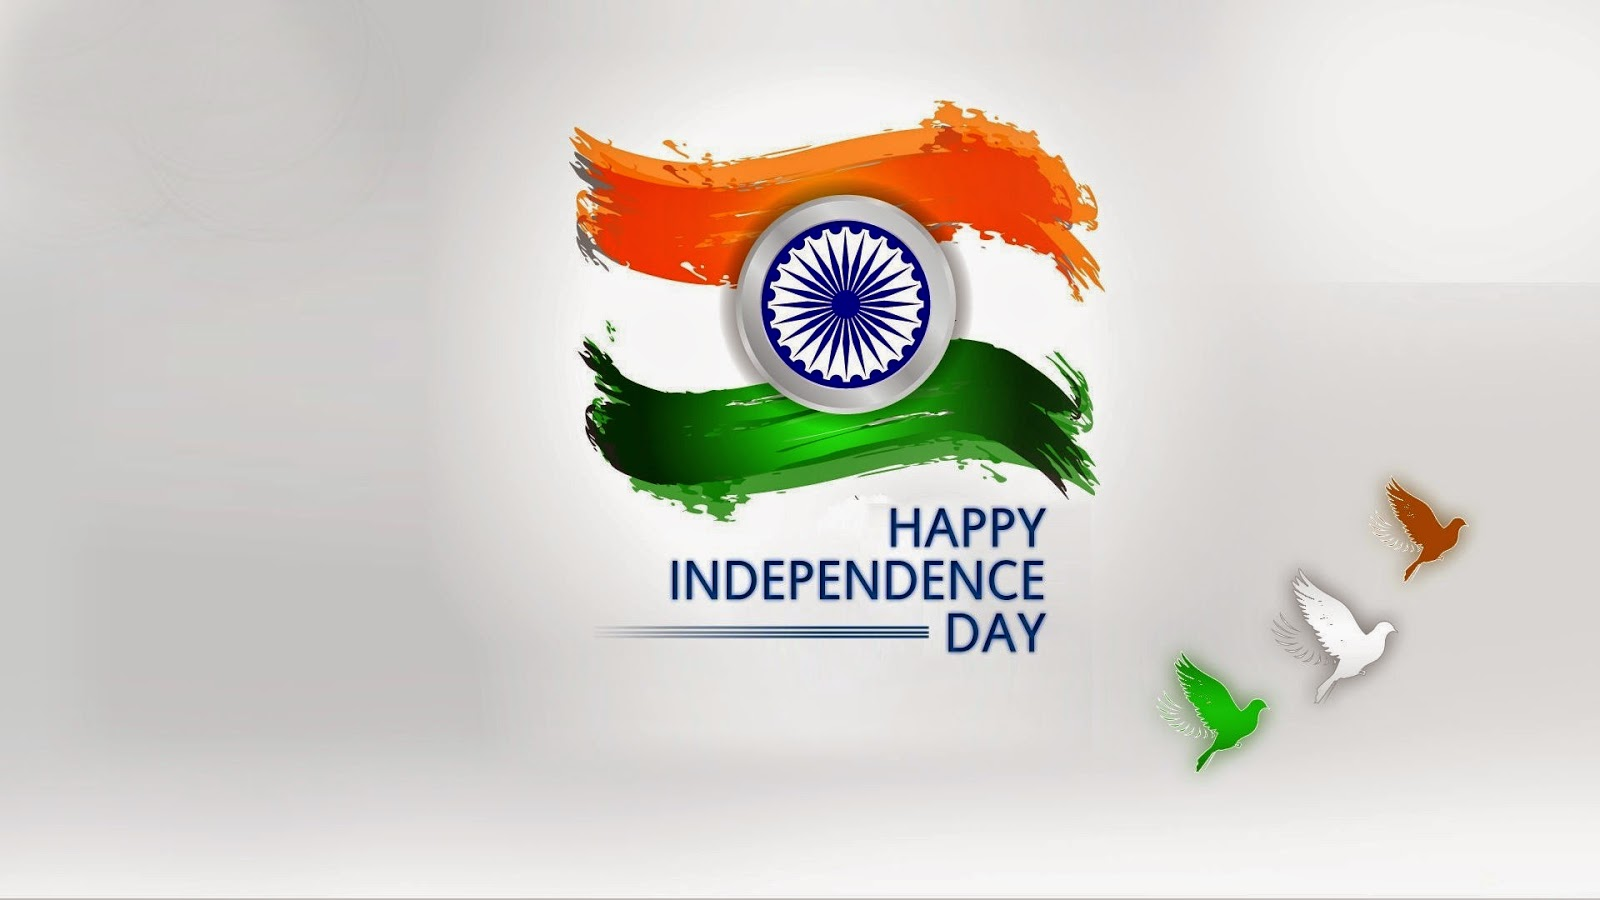 Happy Independence Day 2014 Painting wallpaper